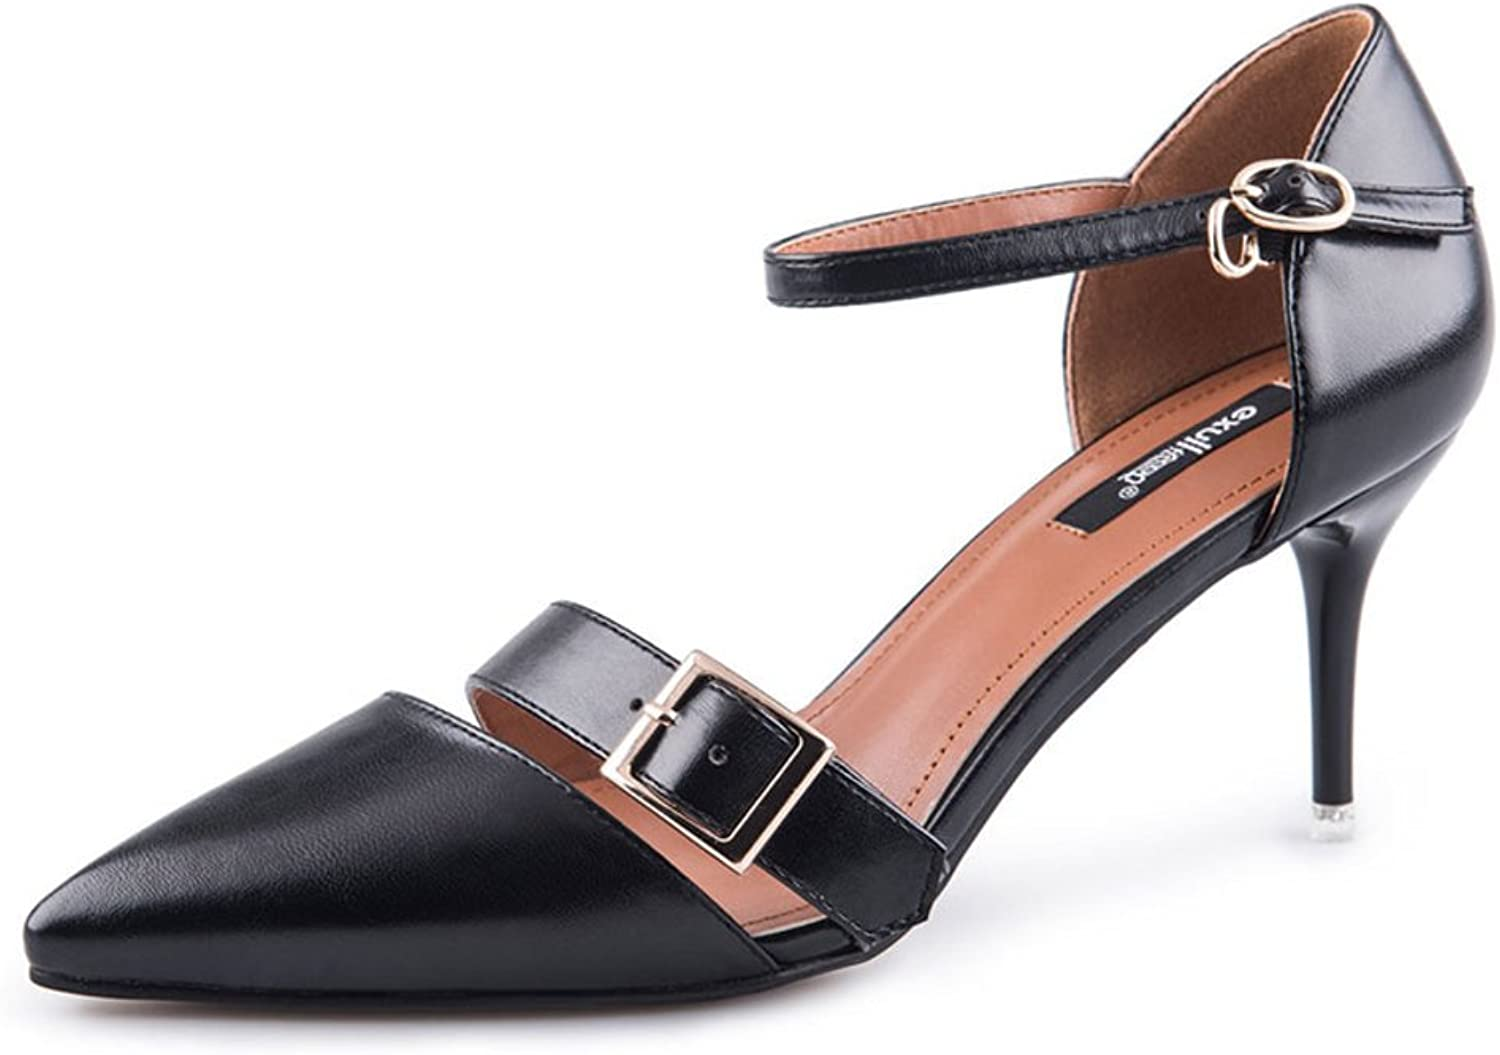 MET RXL Autumn Fashion Heels Metal Buckle shoes Solid color shoes